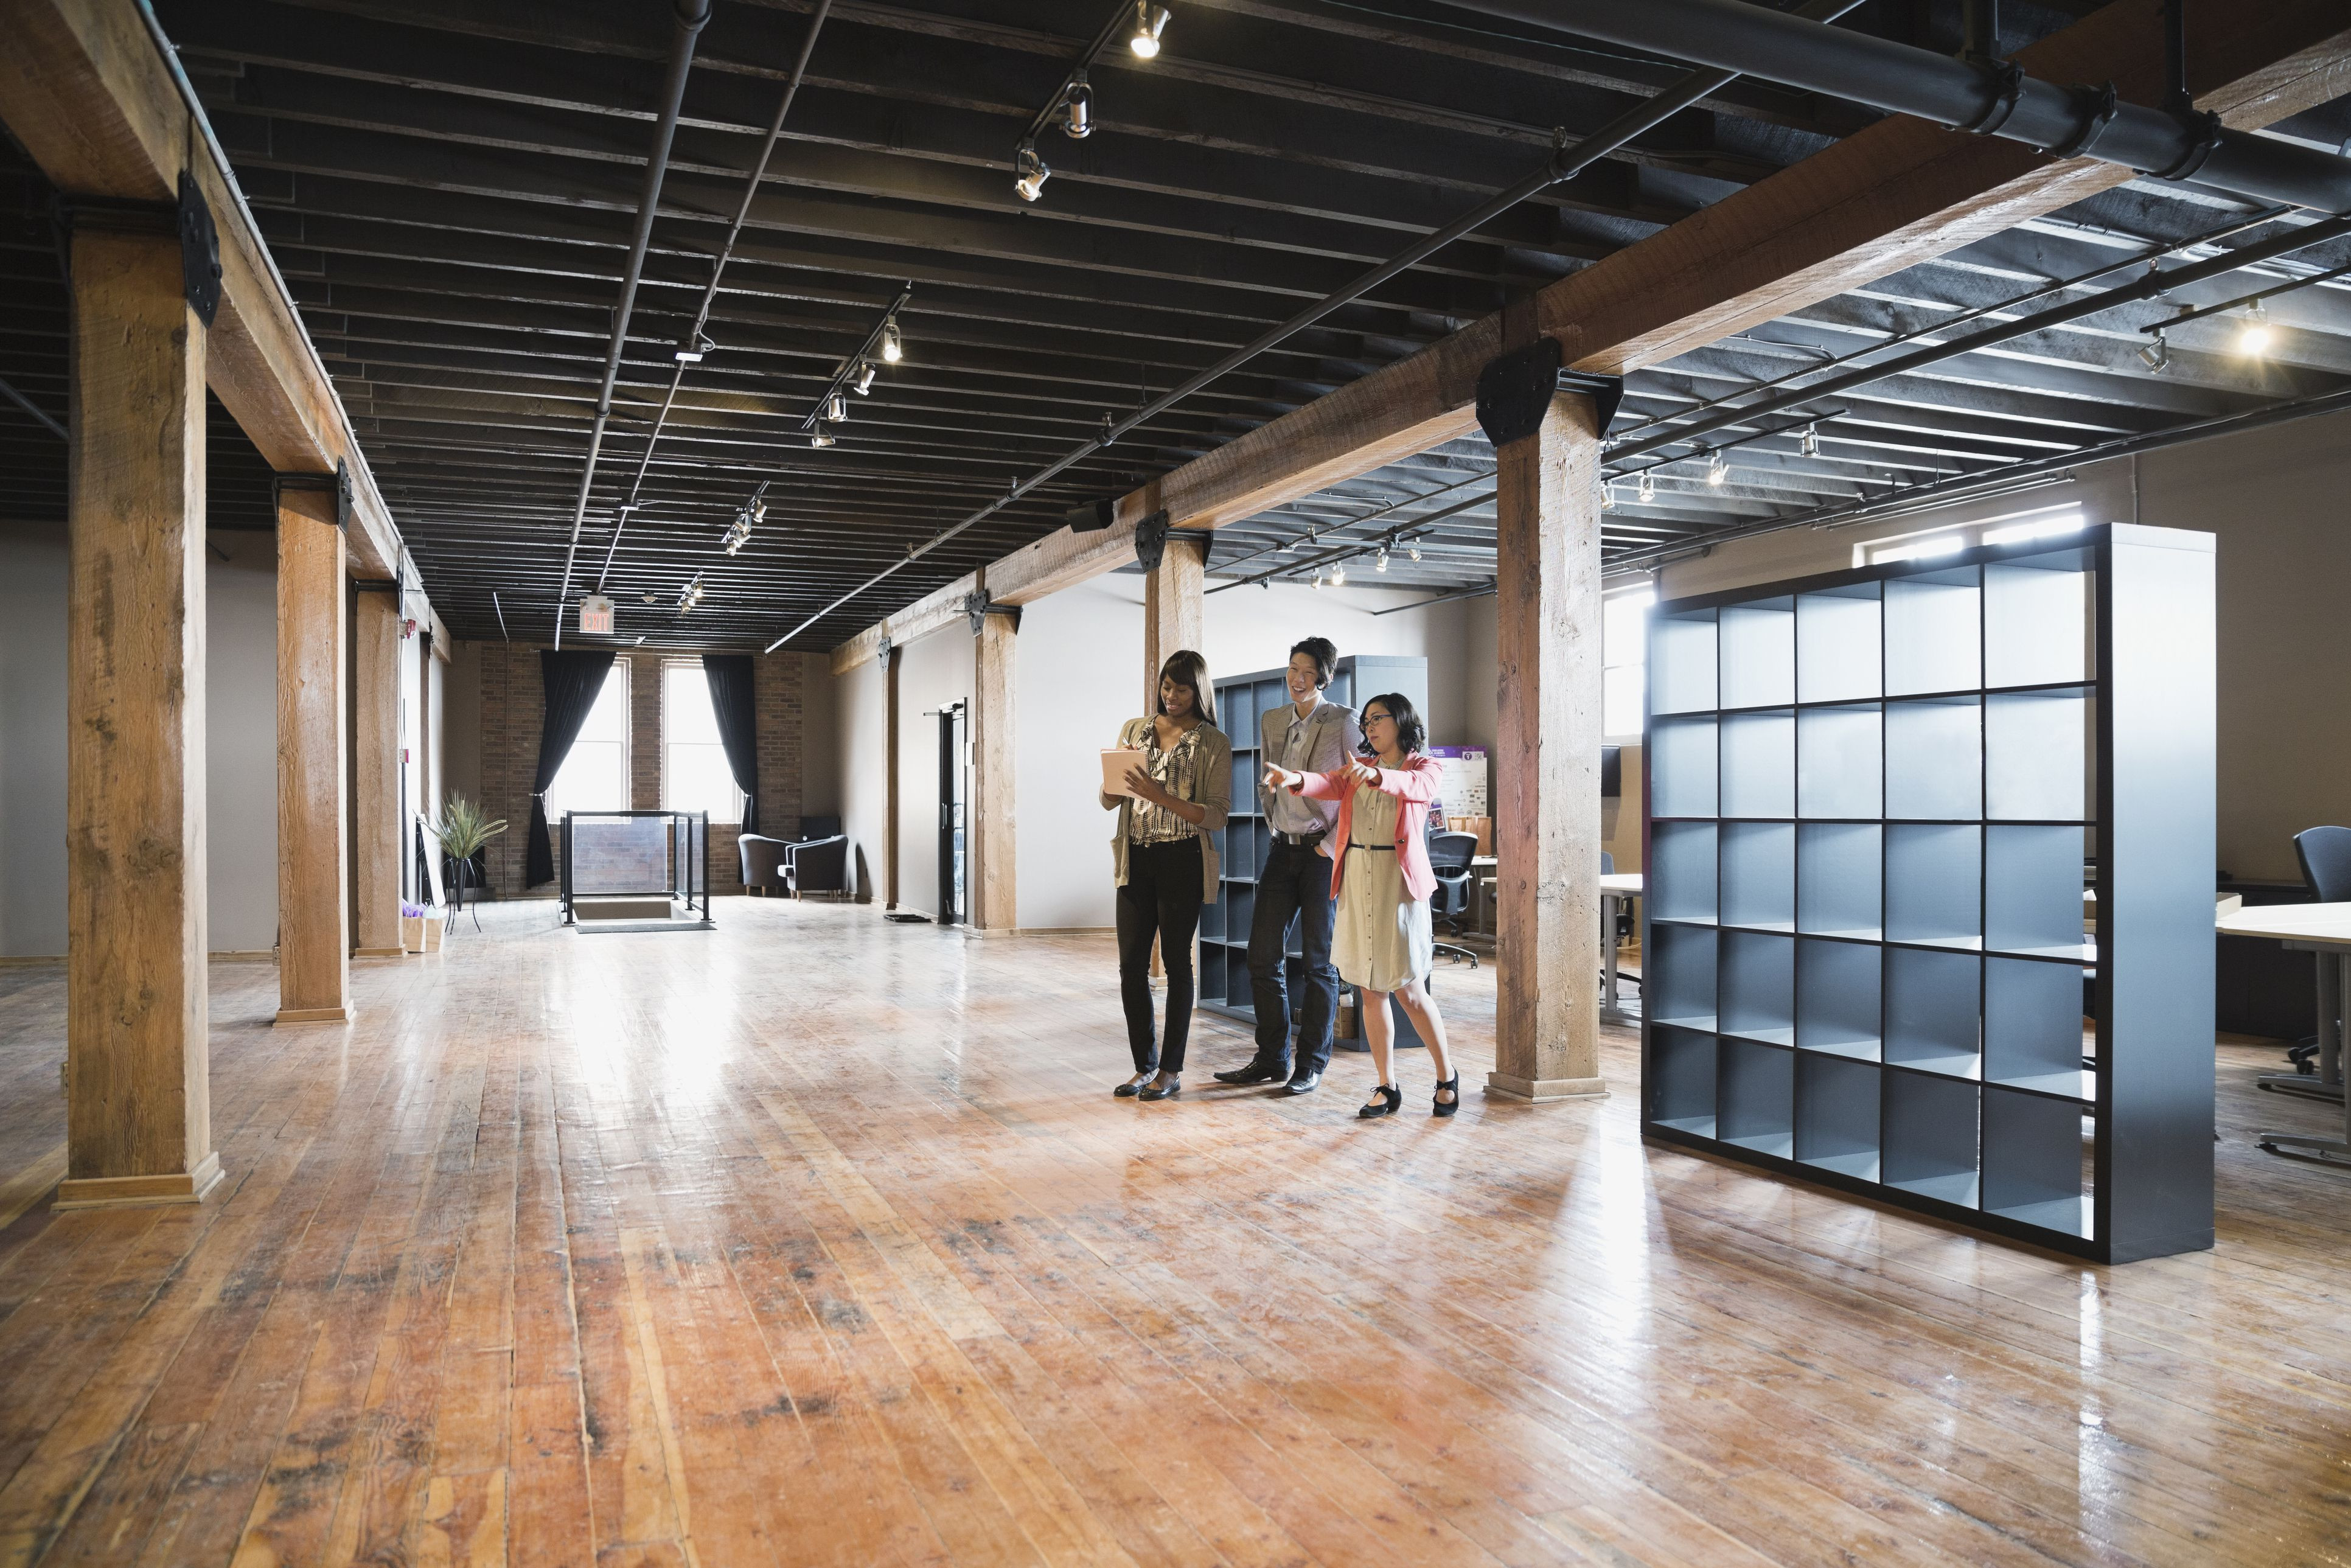 cost of hardwood floors for 2000 sq ft of calculate commercial leases with square feet formulas throughout entrepreneurs looking at creative office space 175138263 578e68cf3df78c09e947ec60